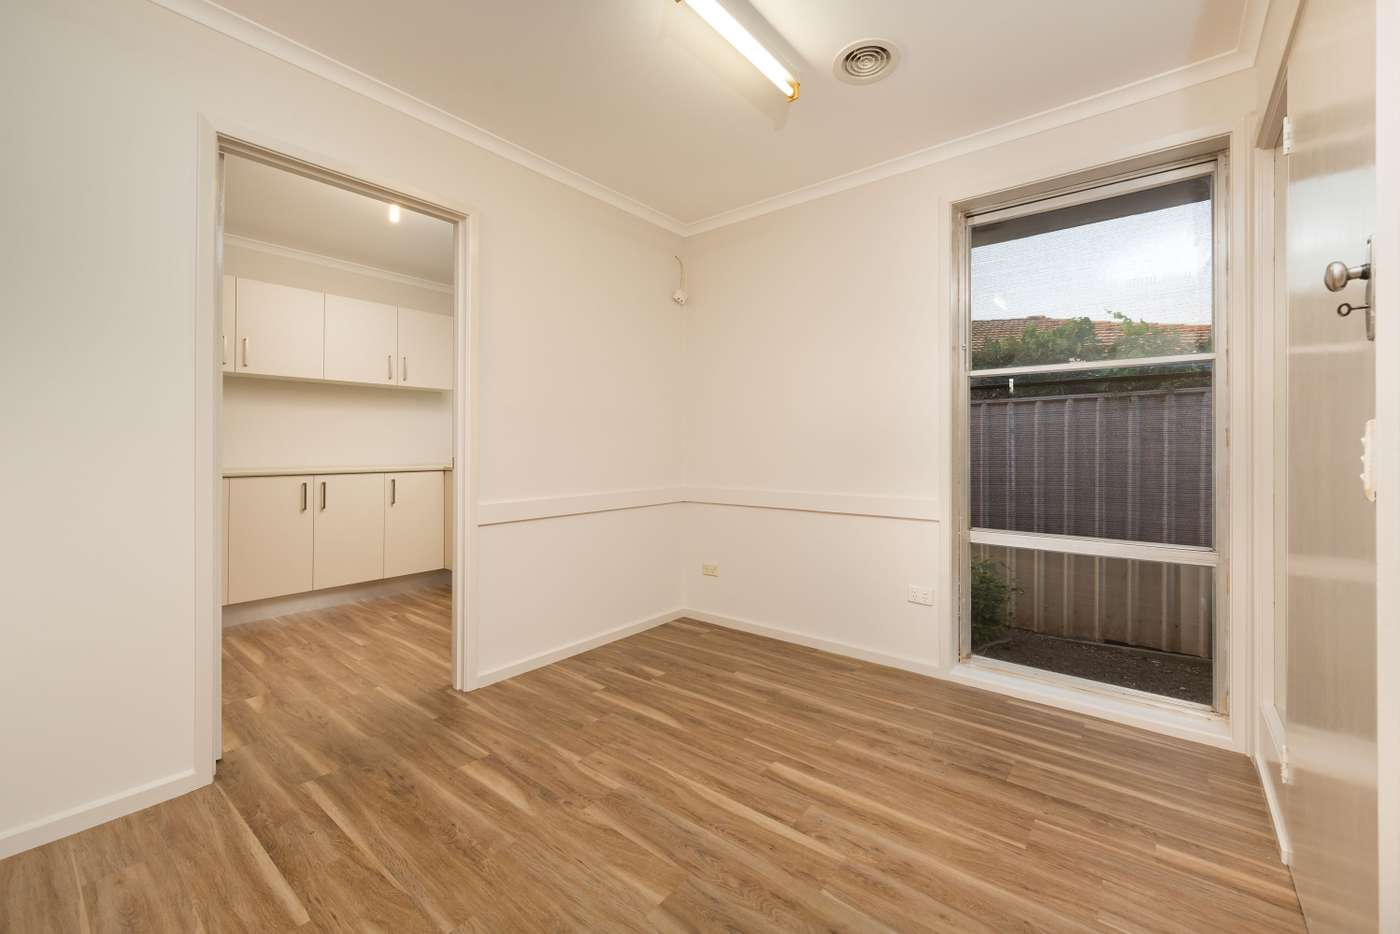 Seventh view of Homely house listing, 108 GRALEN STREET, Wodonga VIC 3690